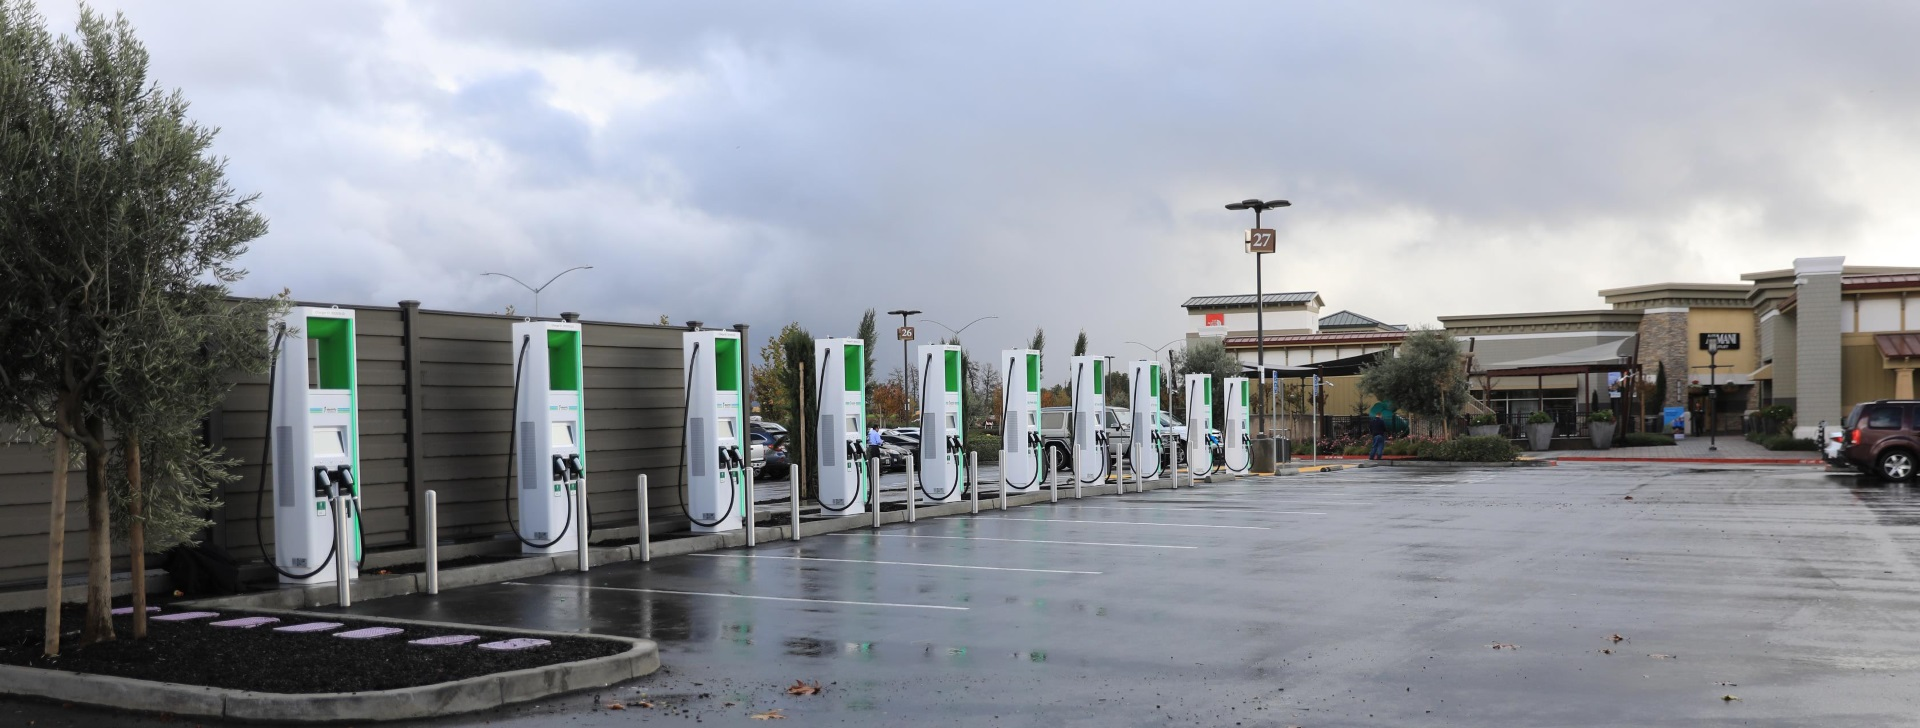 Location is everything for high-power DC fast charging